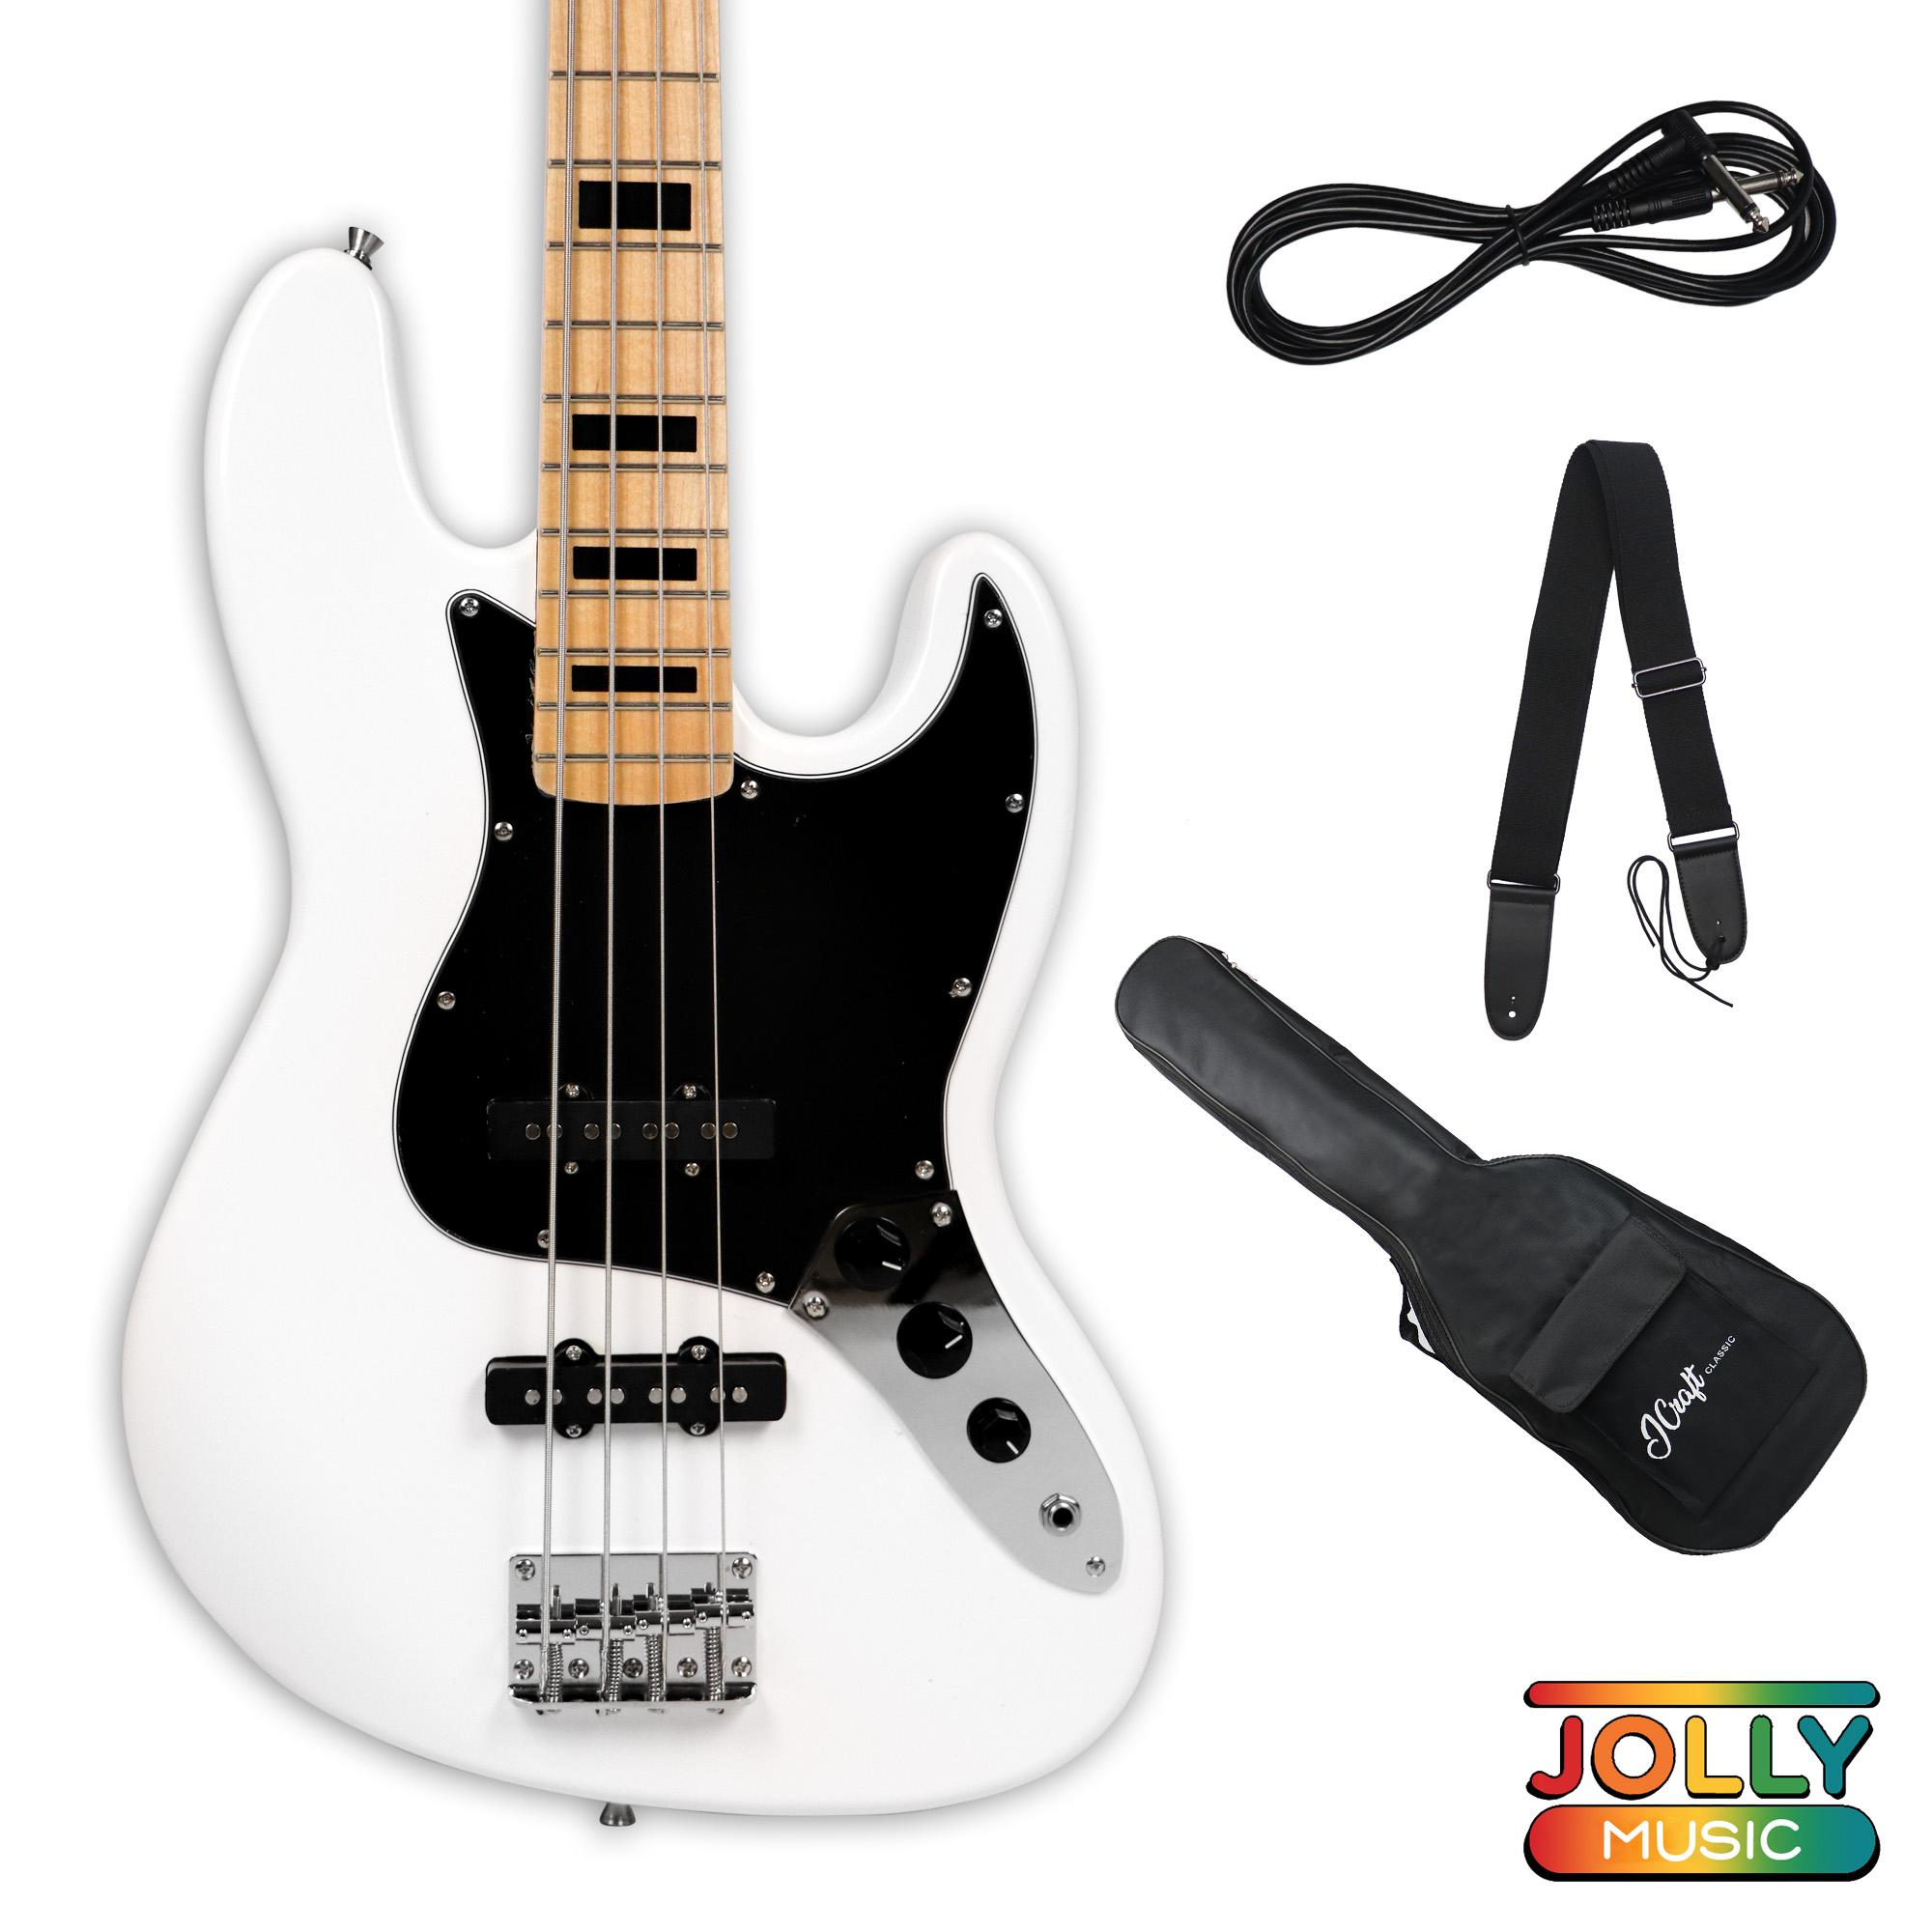 Bass Guitars For Sale Guitar Best Seller Prices Brands In Making A Simple Diy Mini Amplifier Strat And Other J Craft Jb 1 4 String Jazz